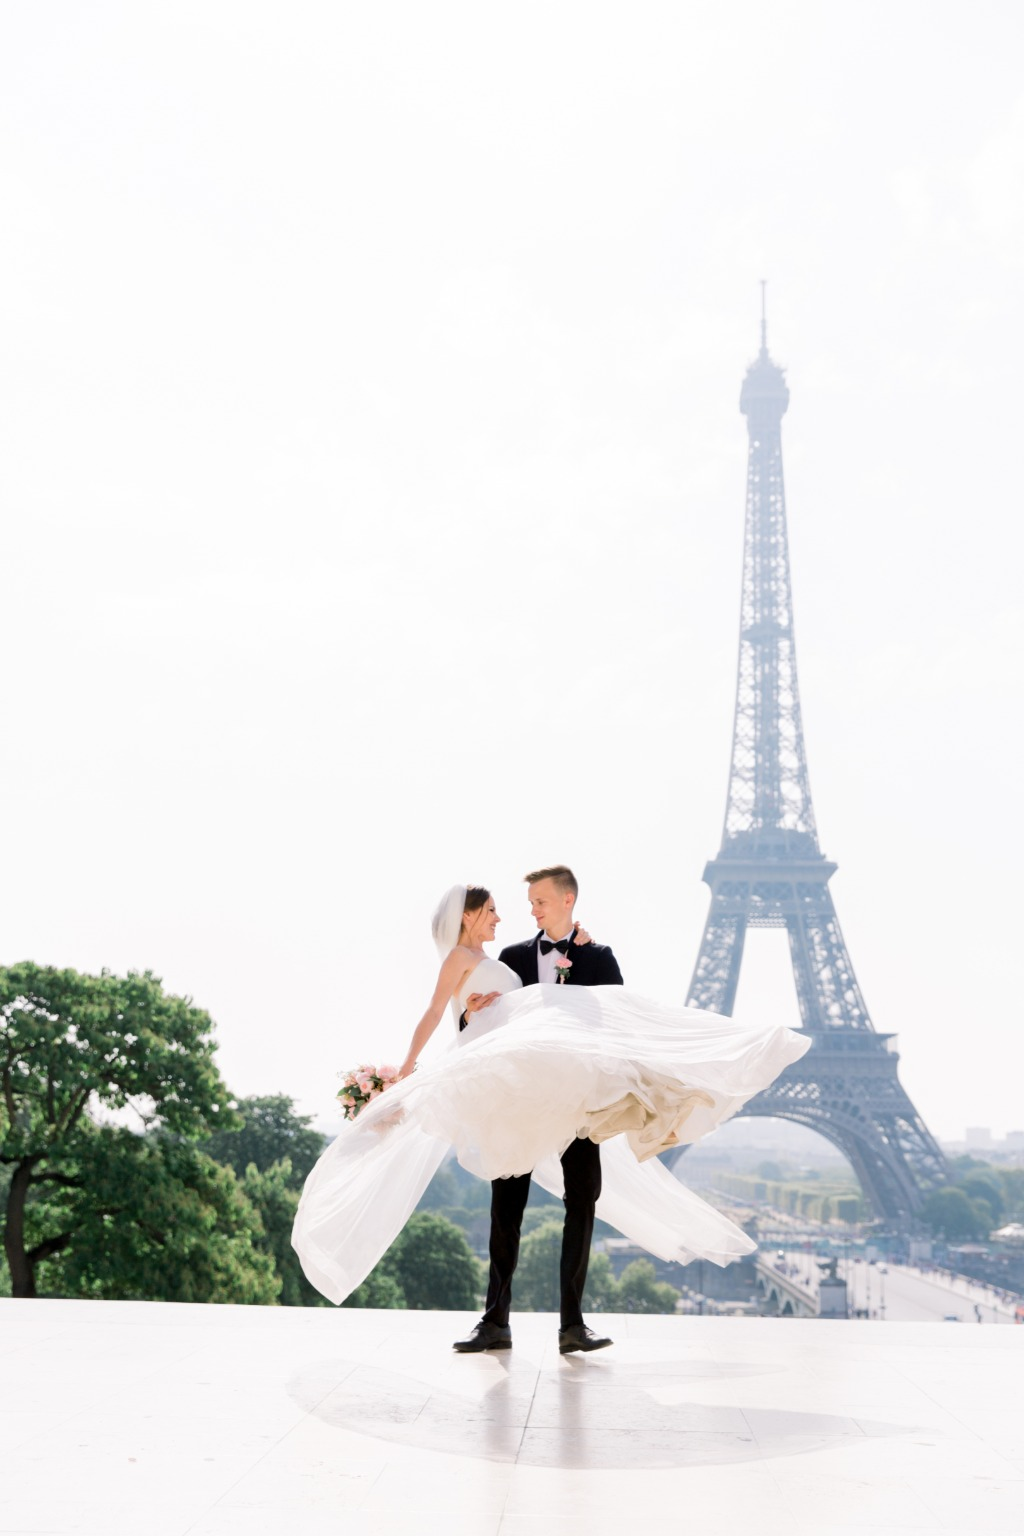 The romance of Parisian weddings